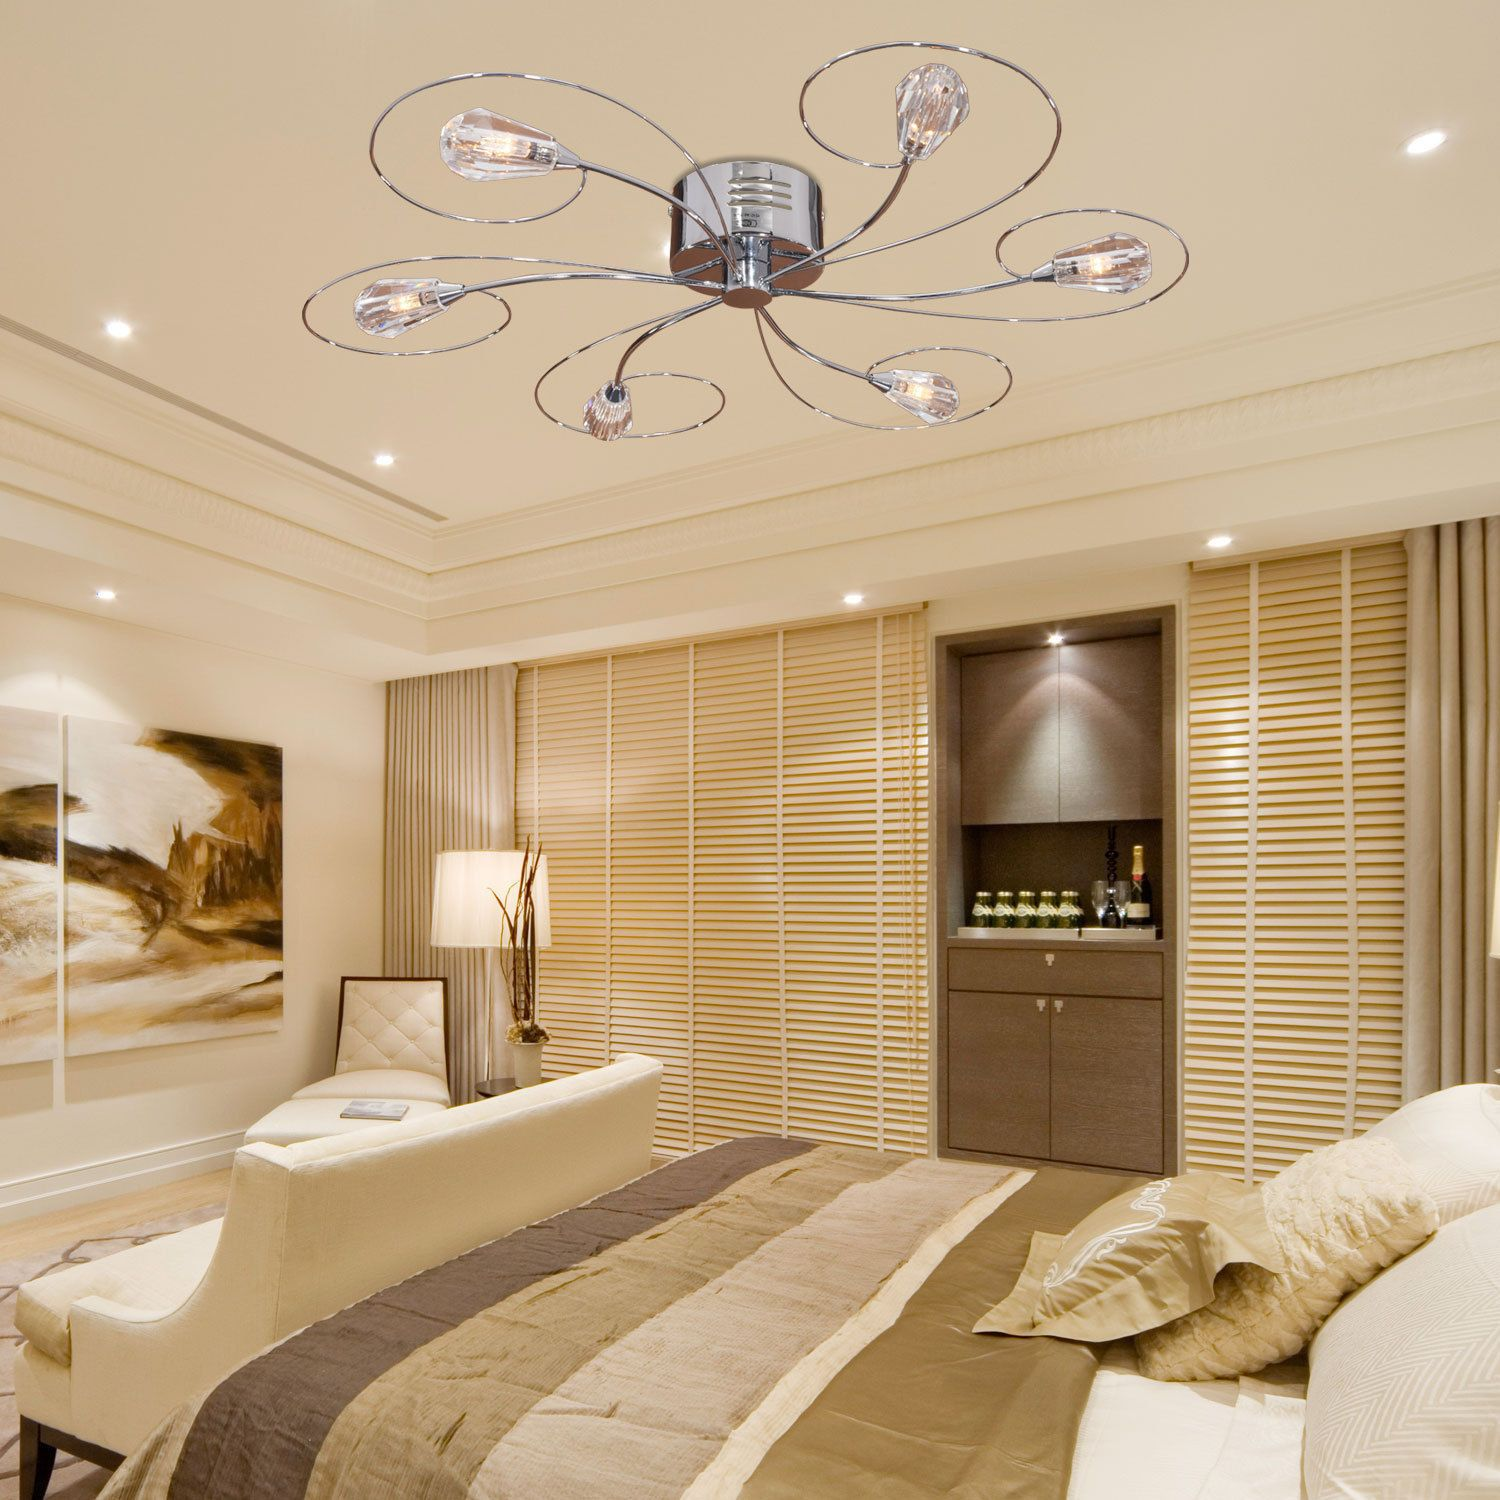 Unique Bright Chandelier Ceiling Fan for Ceiling Deocrating